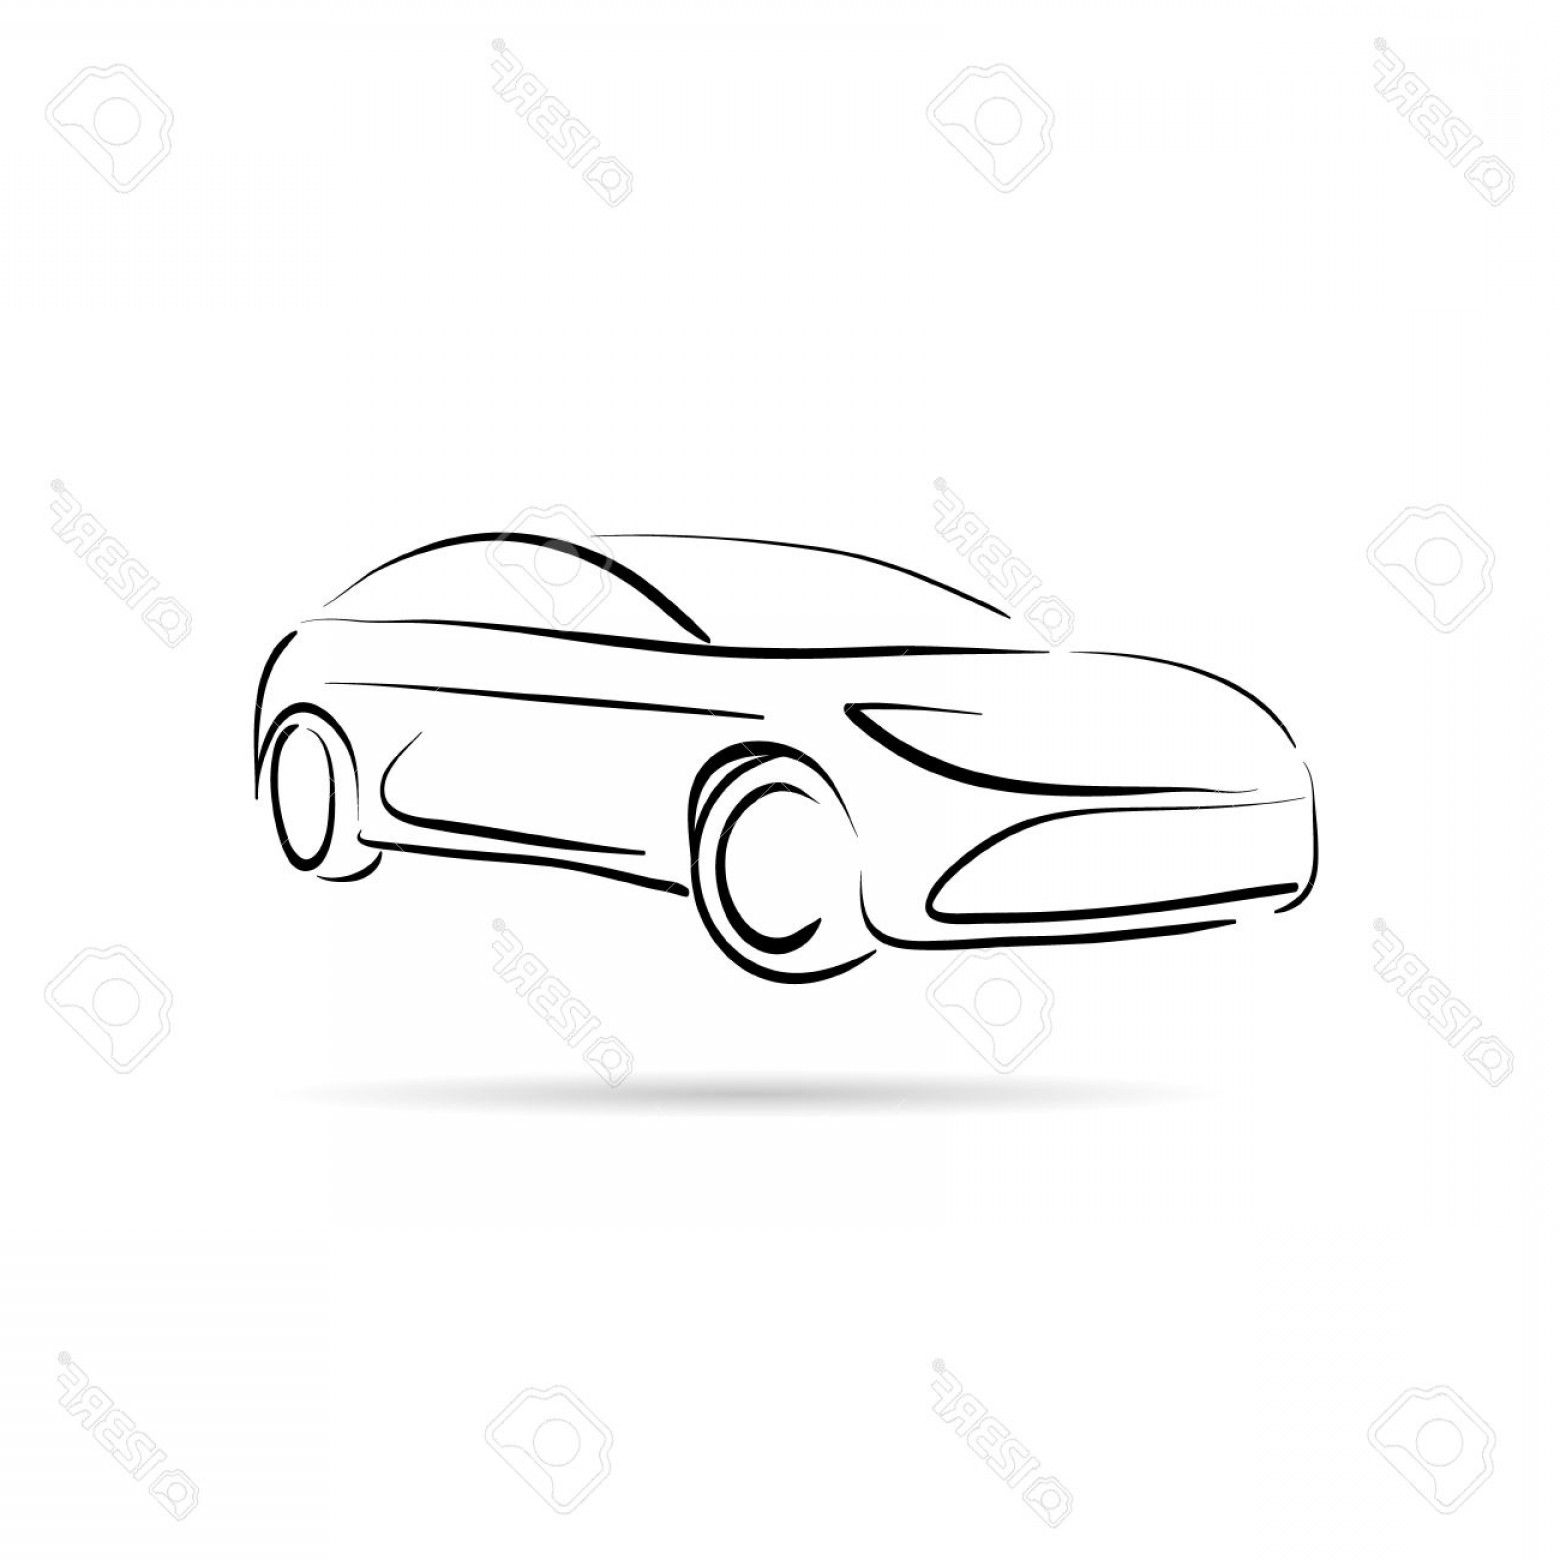 Black Abstract Lines Vector: Photostock Vector Car Abstract Lines Vector Design Concept